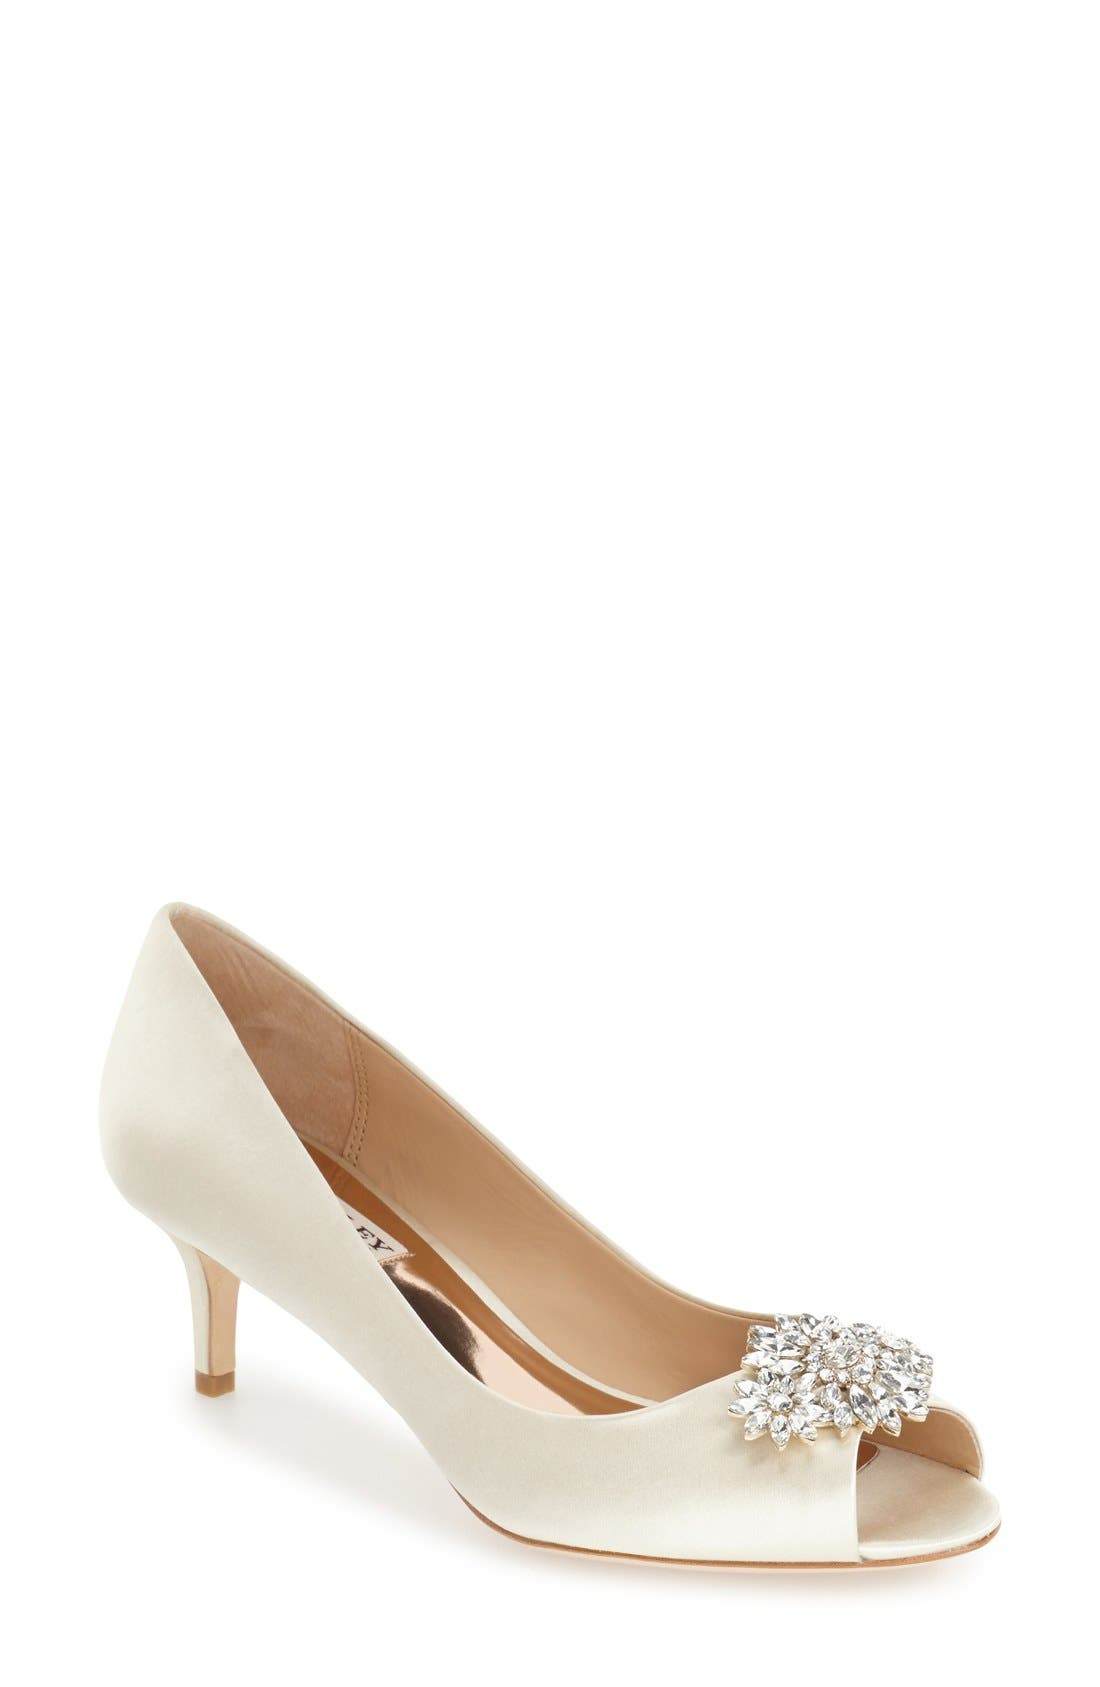 Badgley Mischka Wedding Shoes Nordstrom